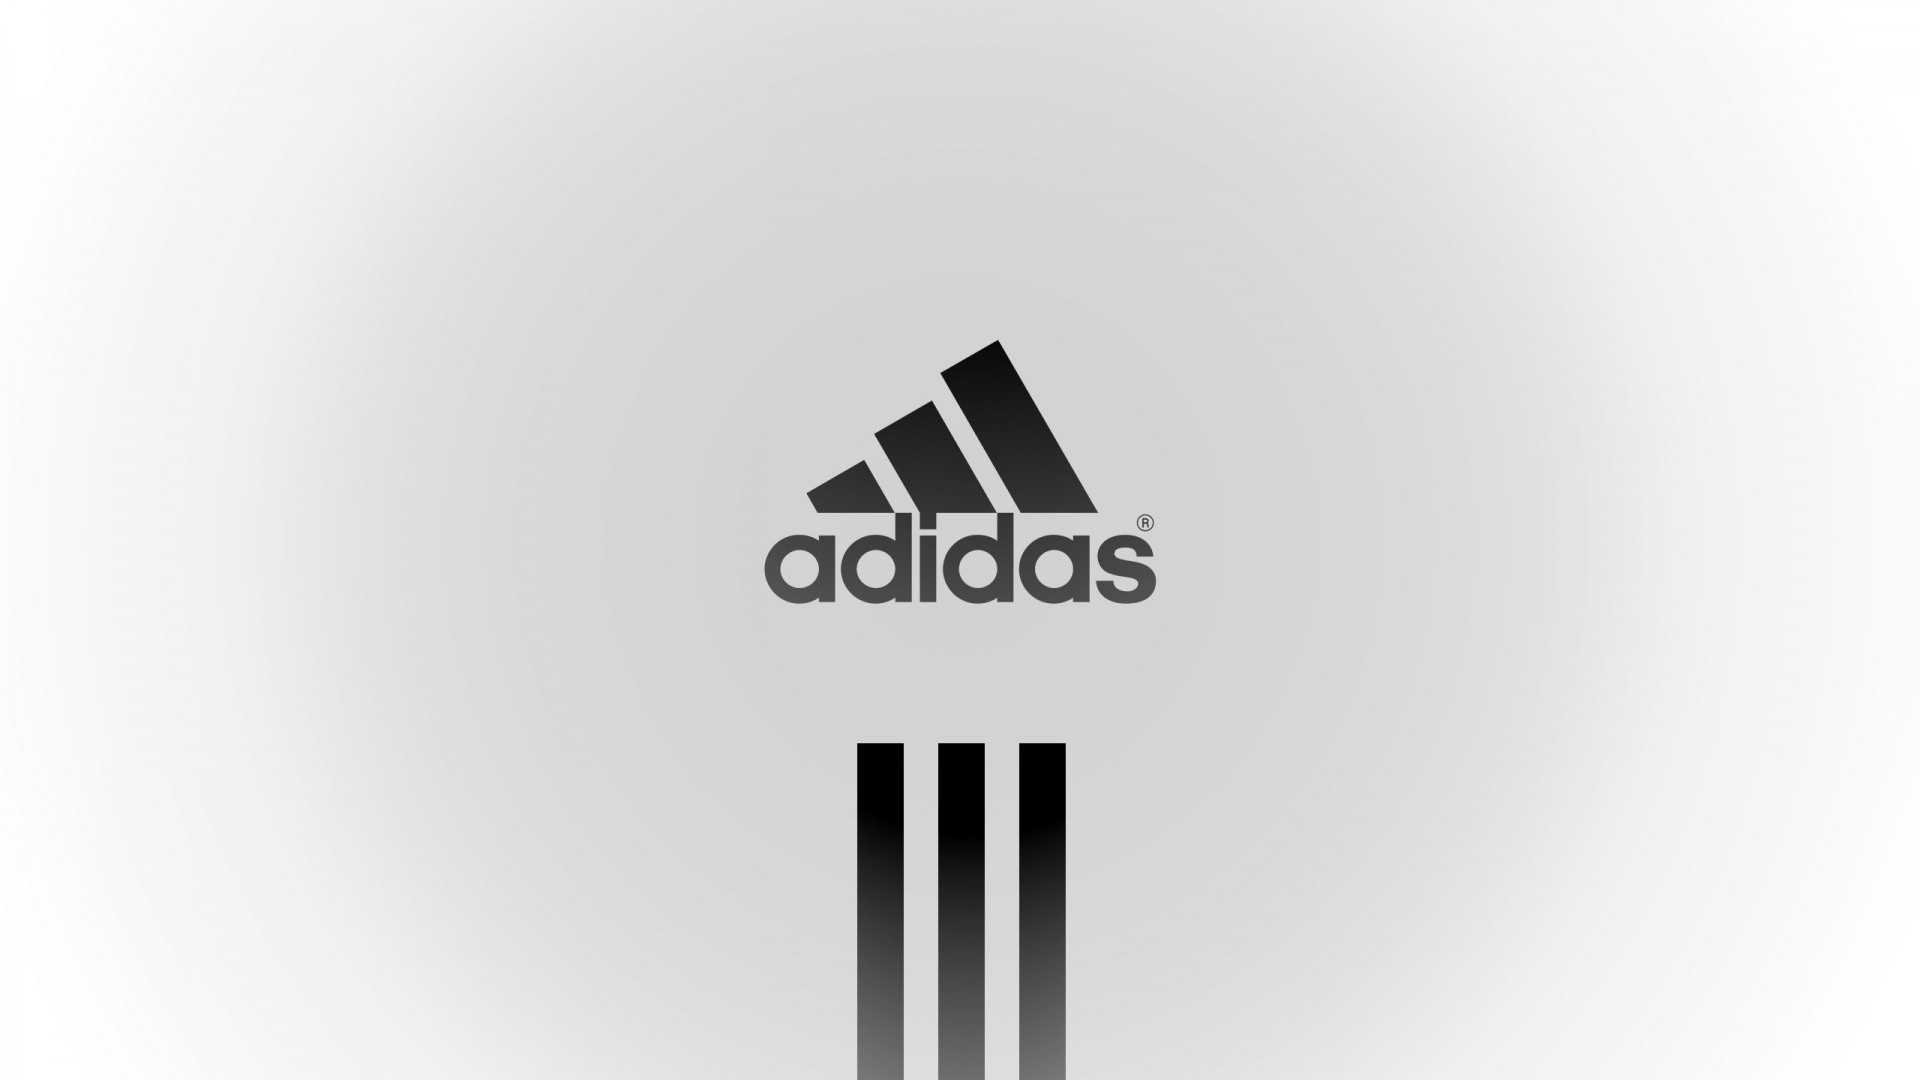 Adidas, Sports, Logo, Brand, Minimalism, White Background Wallpapers HD /  Desktop and Mobile Backgrounds